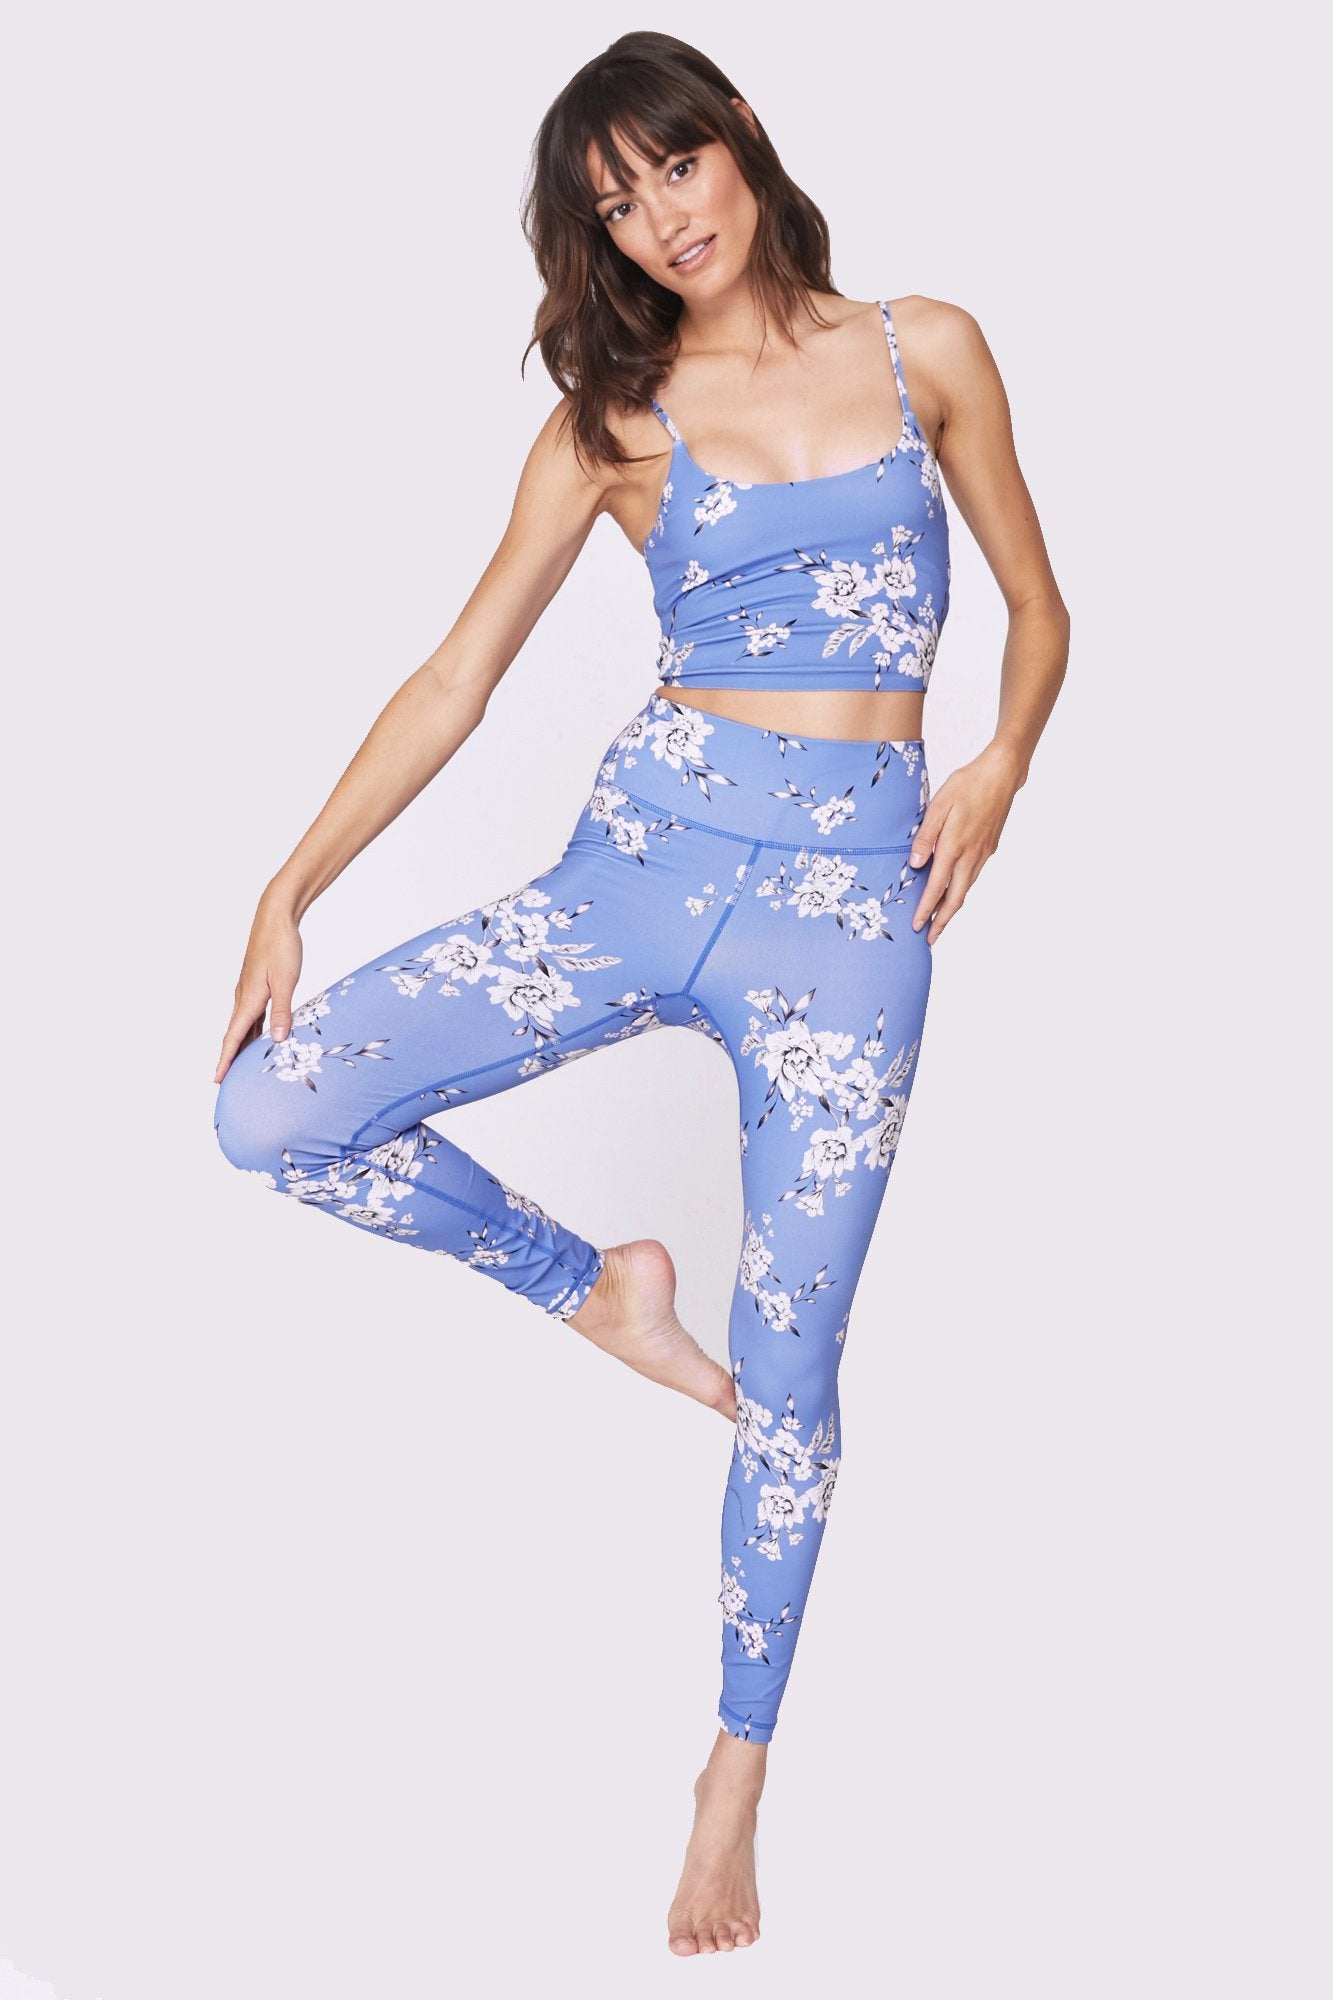 43a3947f425 Image shows a model wearing a floral came by spiritual gangster. The floral  practice came